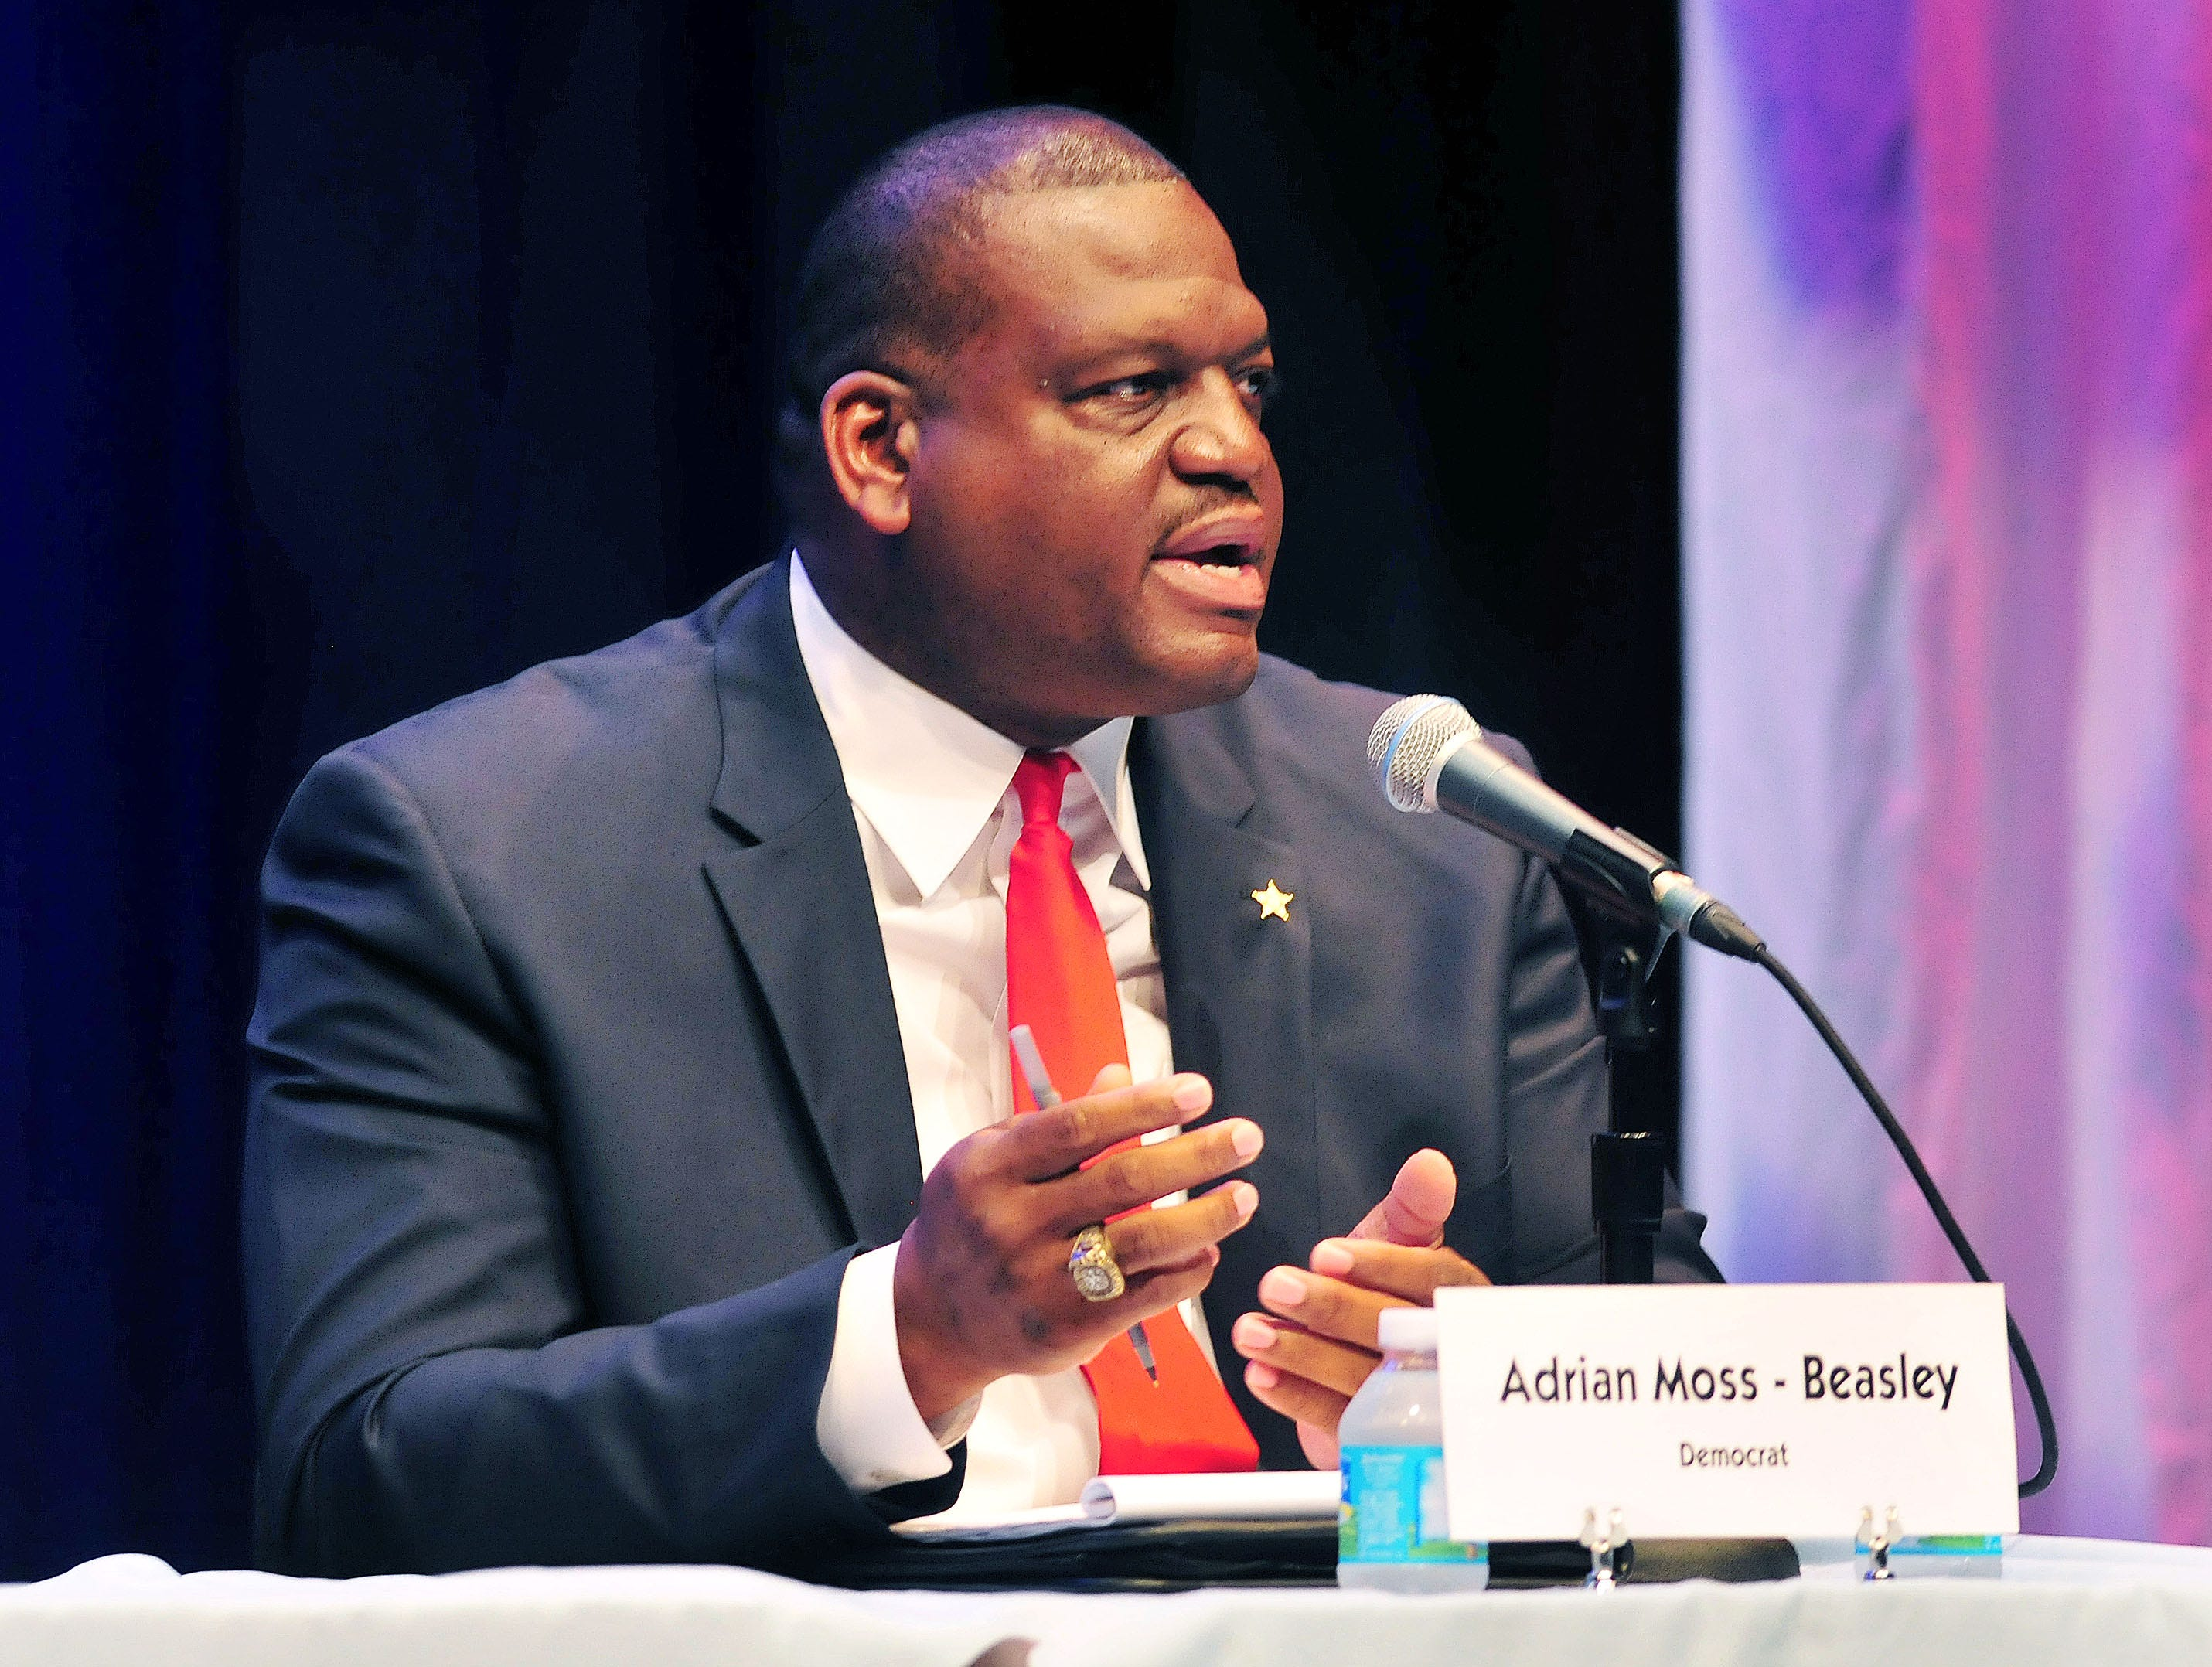 Adrian Moss-Beasley, democrat,  during the candidates forum held Thursday nights night at the BCC Cocoa campus Simpkins Fine Art Center.